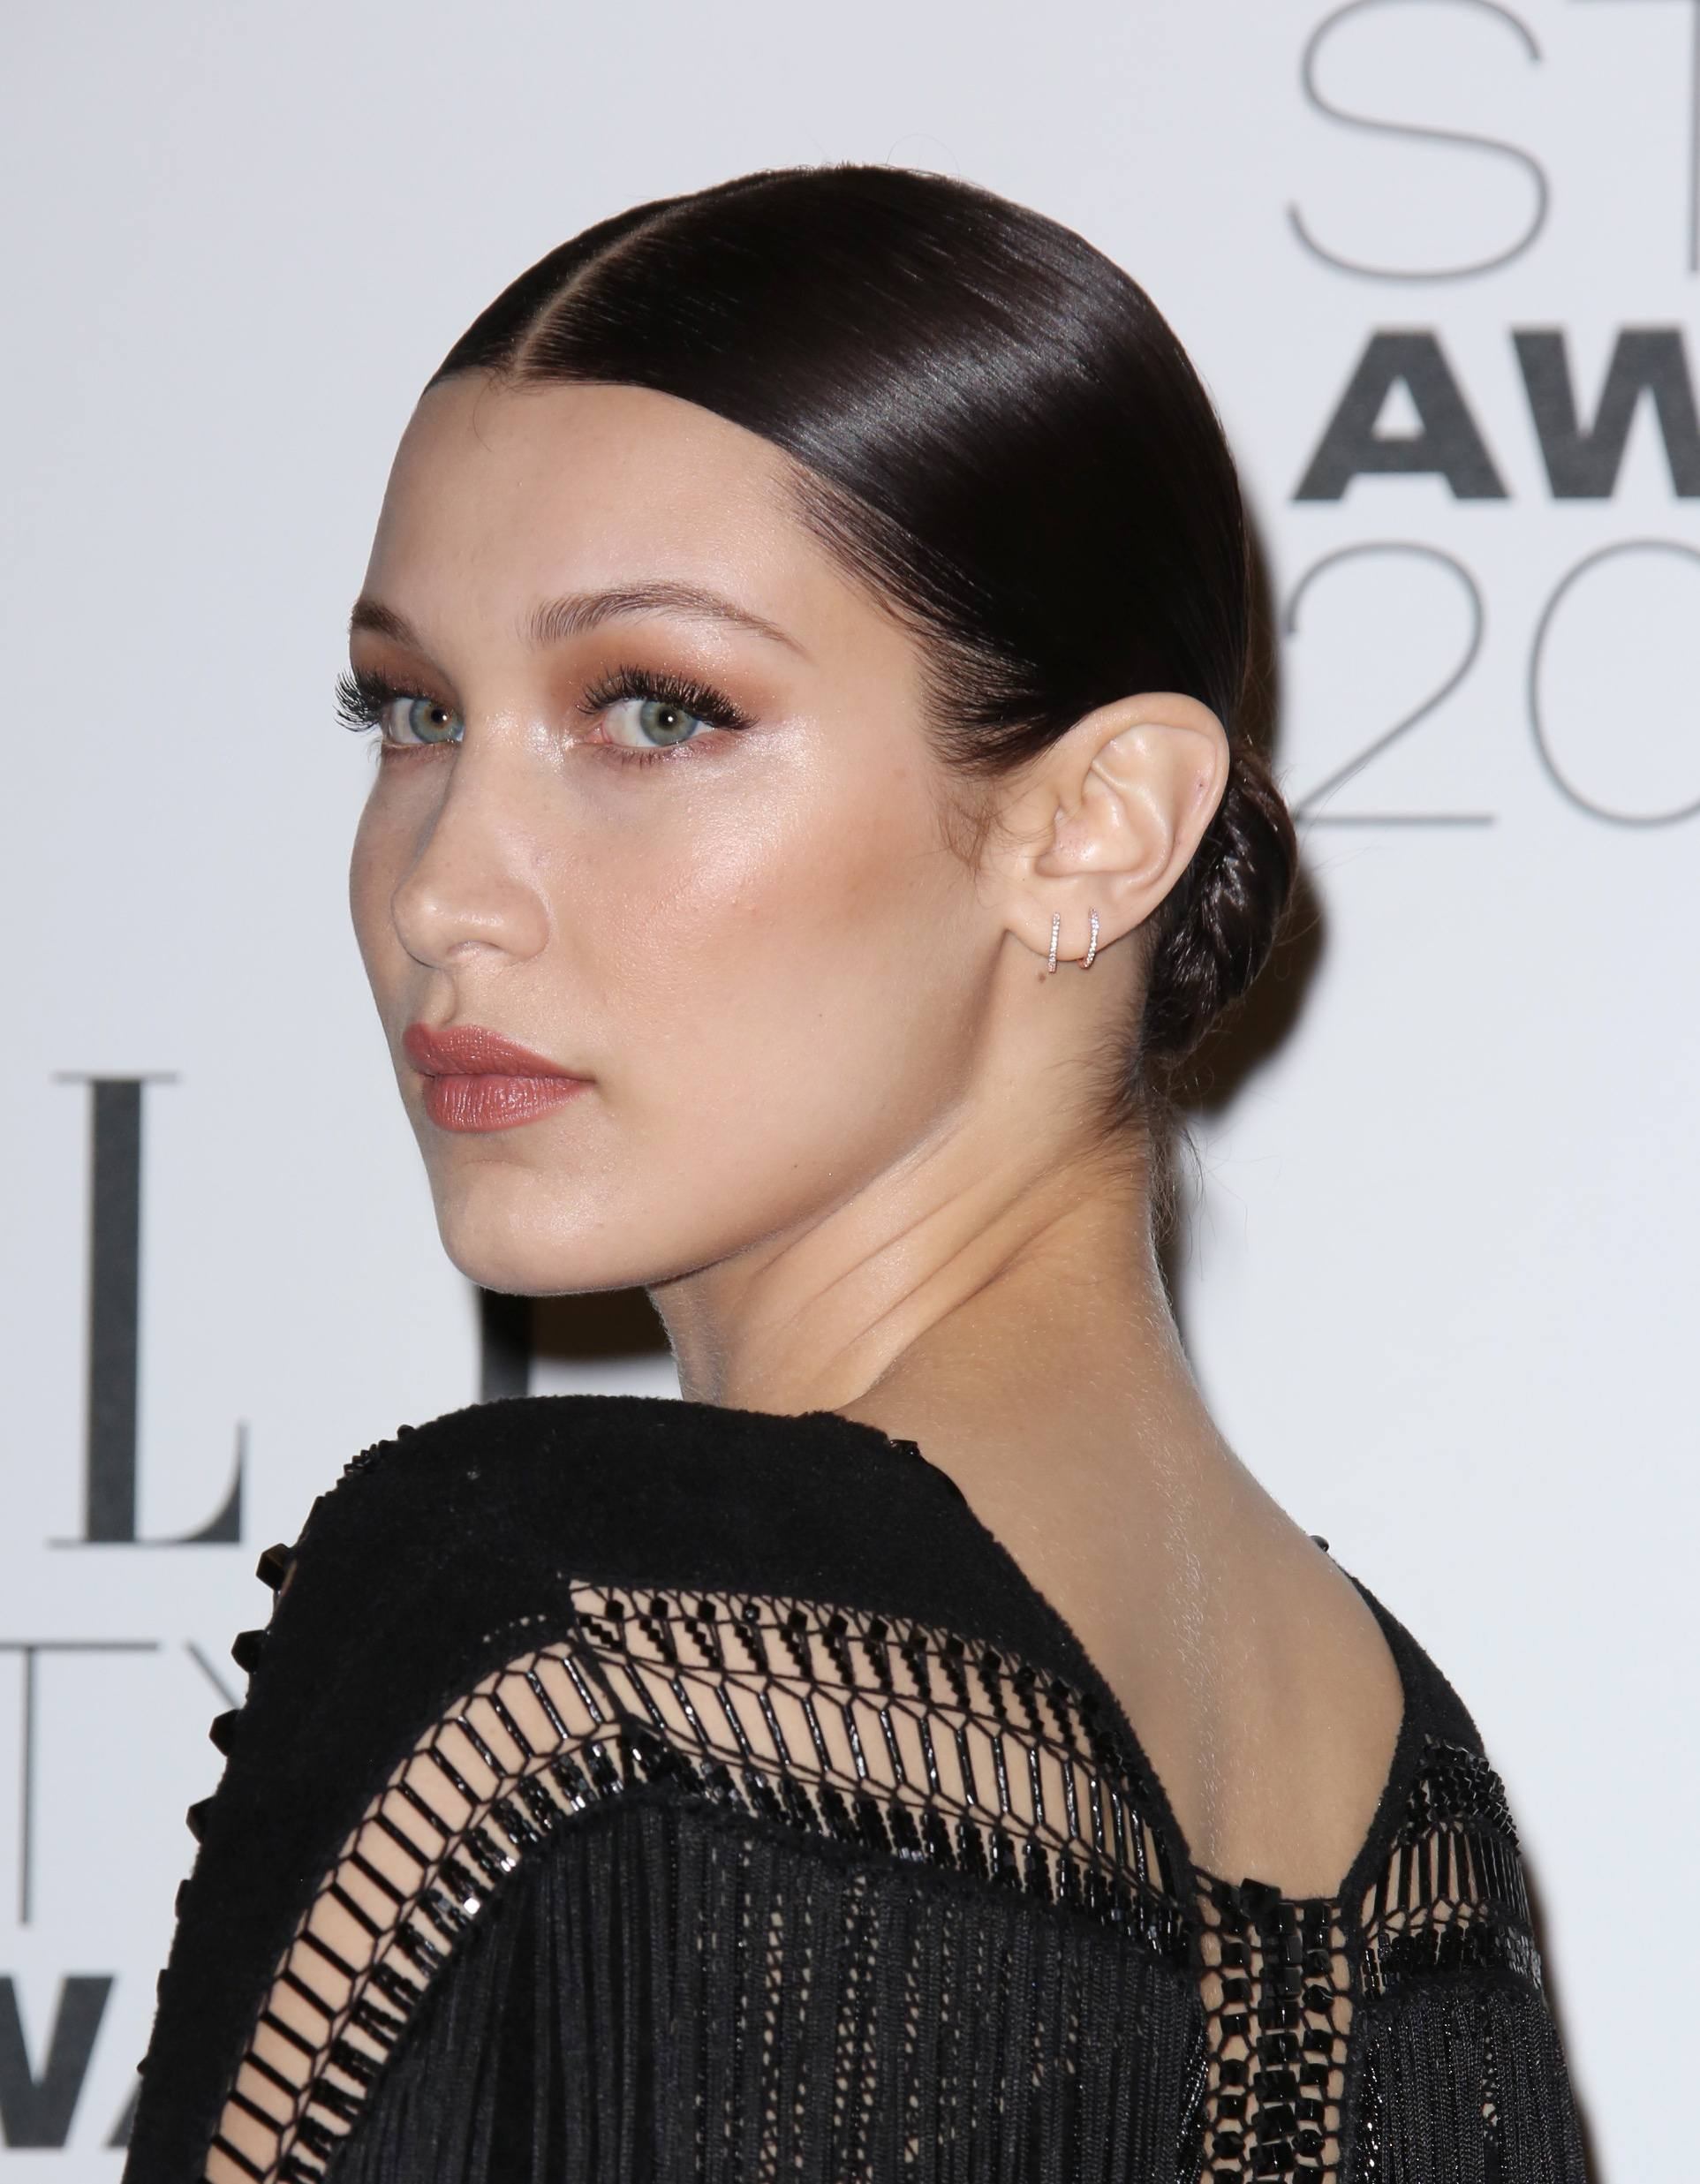 bella hadid with her brunette hair in a sleek low bun